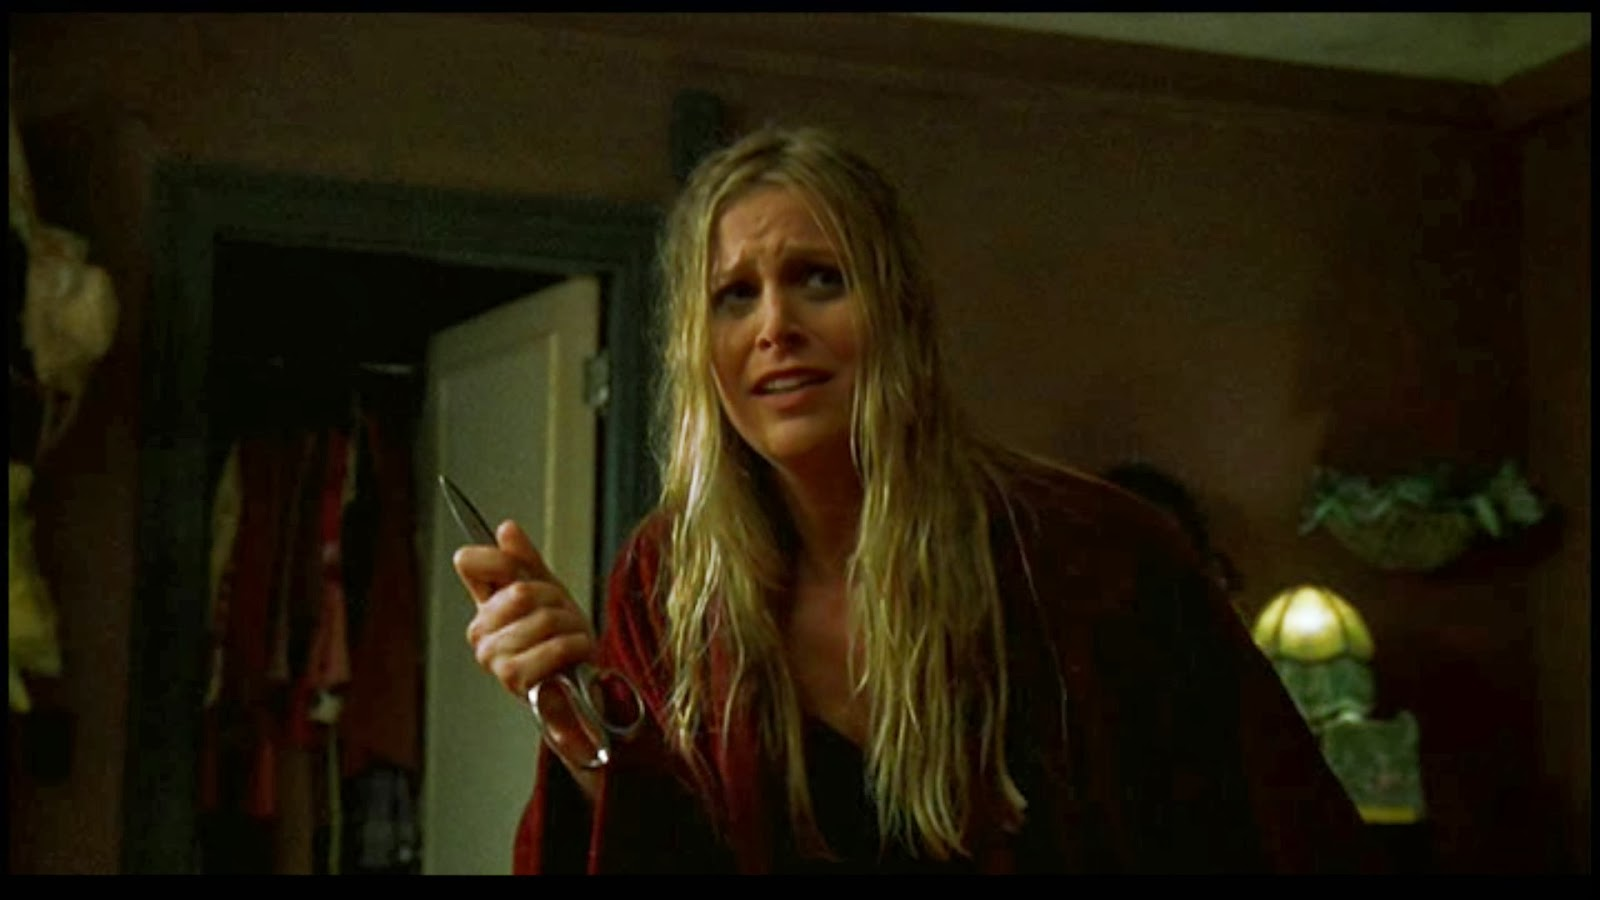 Sheri Moon Zombie nude (18 foto and video), Pussy, Paparazzi, Instagram, braless 2019